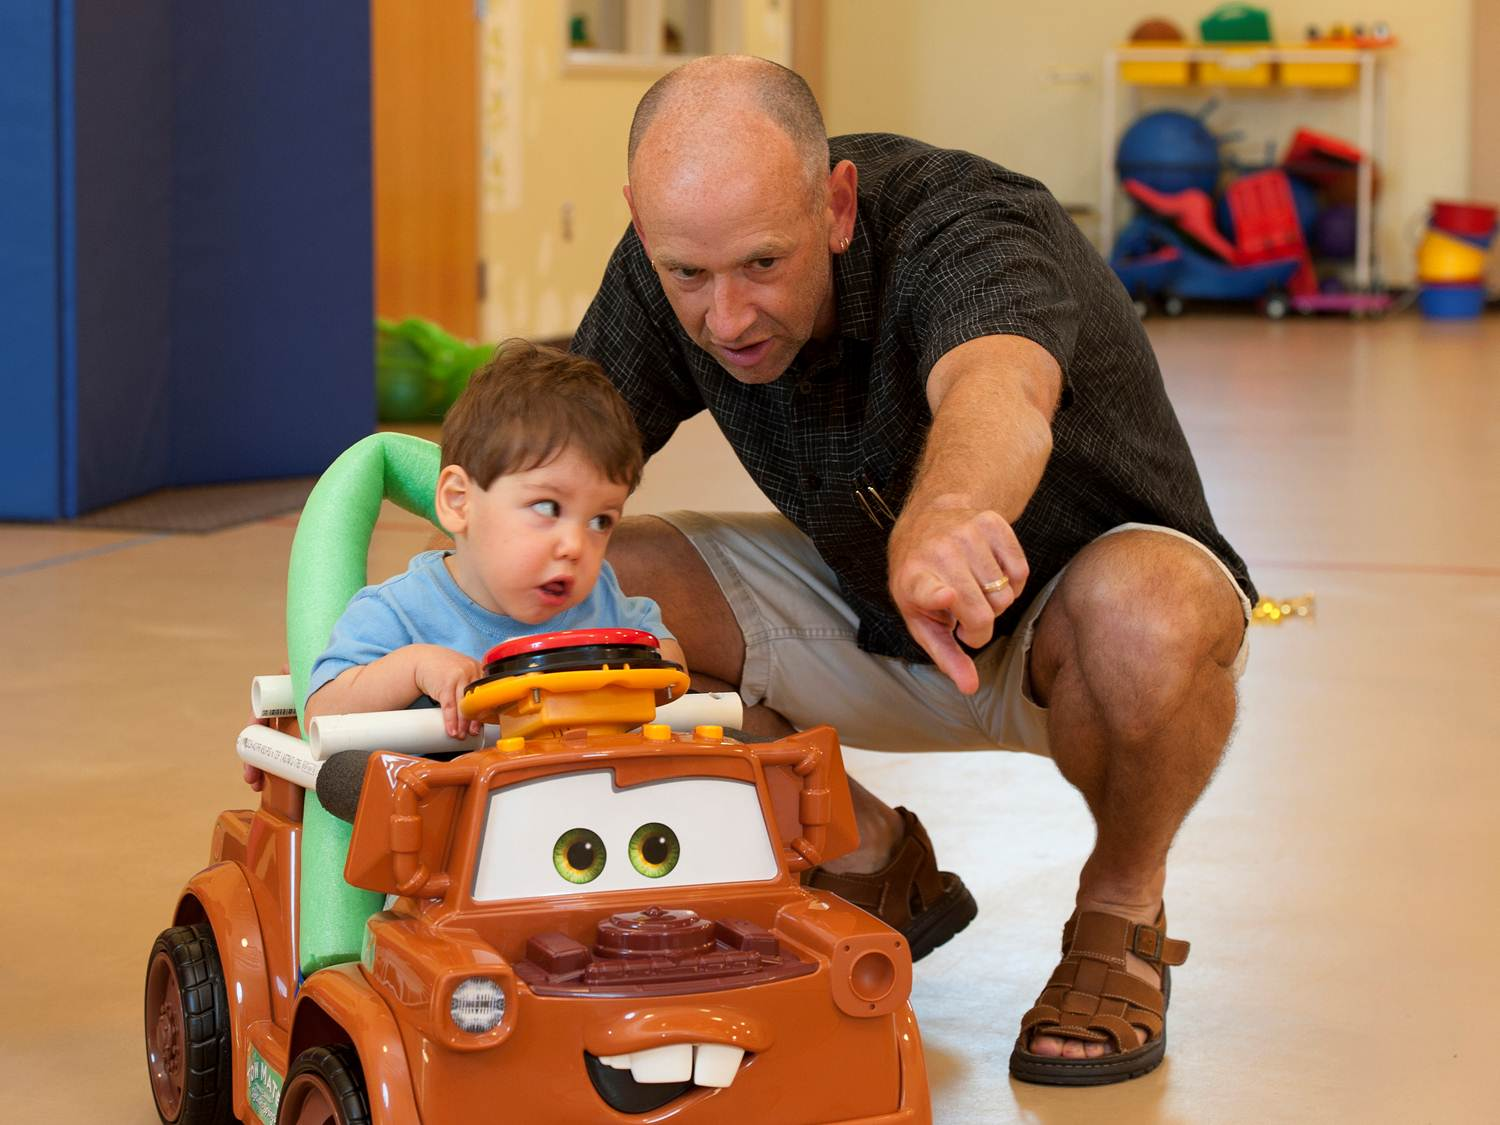 Toys For Spina Bifida : A scientist works with toy maker to get disabled kids